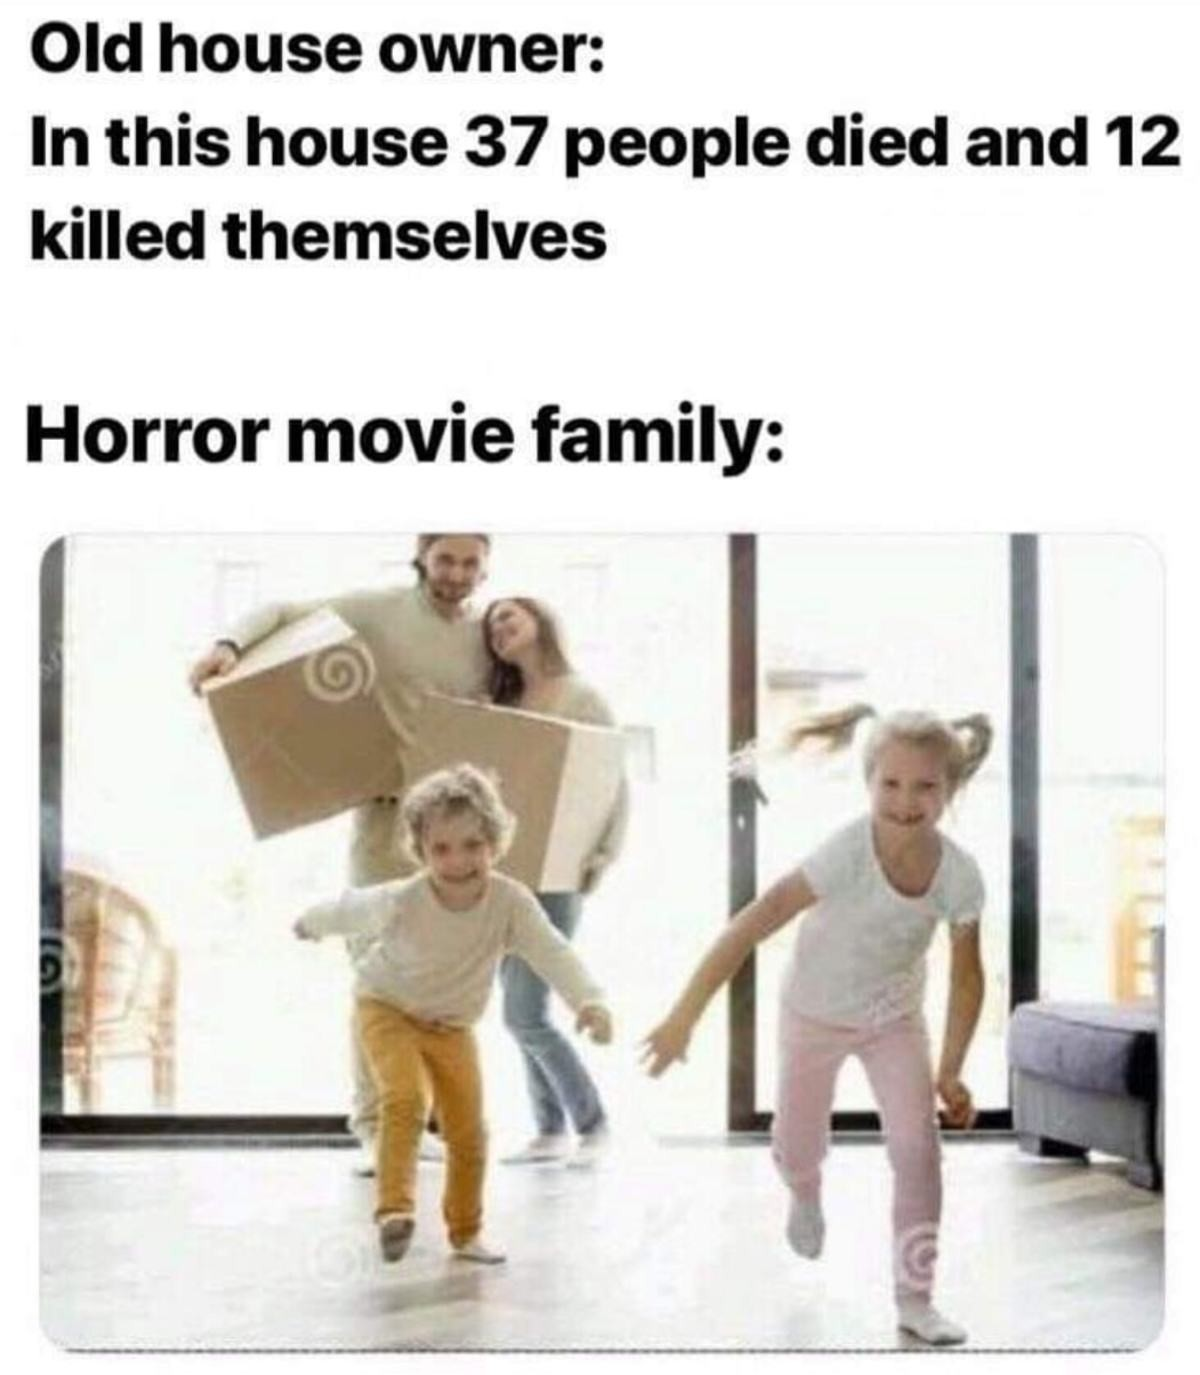 BAsically horror. .. Who wants to see the basement, attic, and crawl spaces?